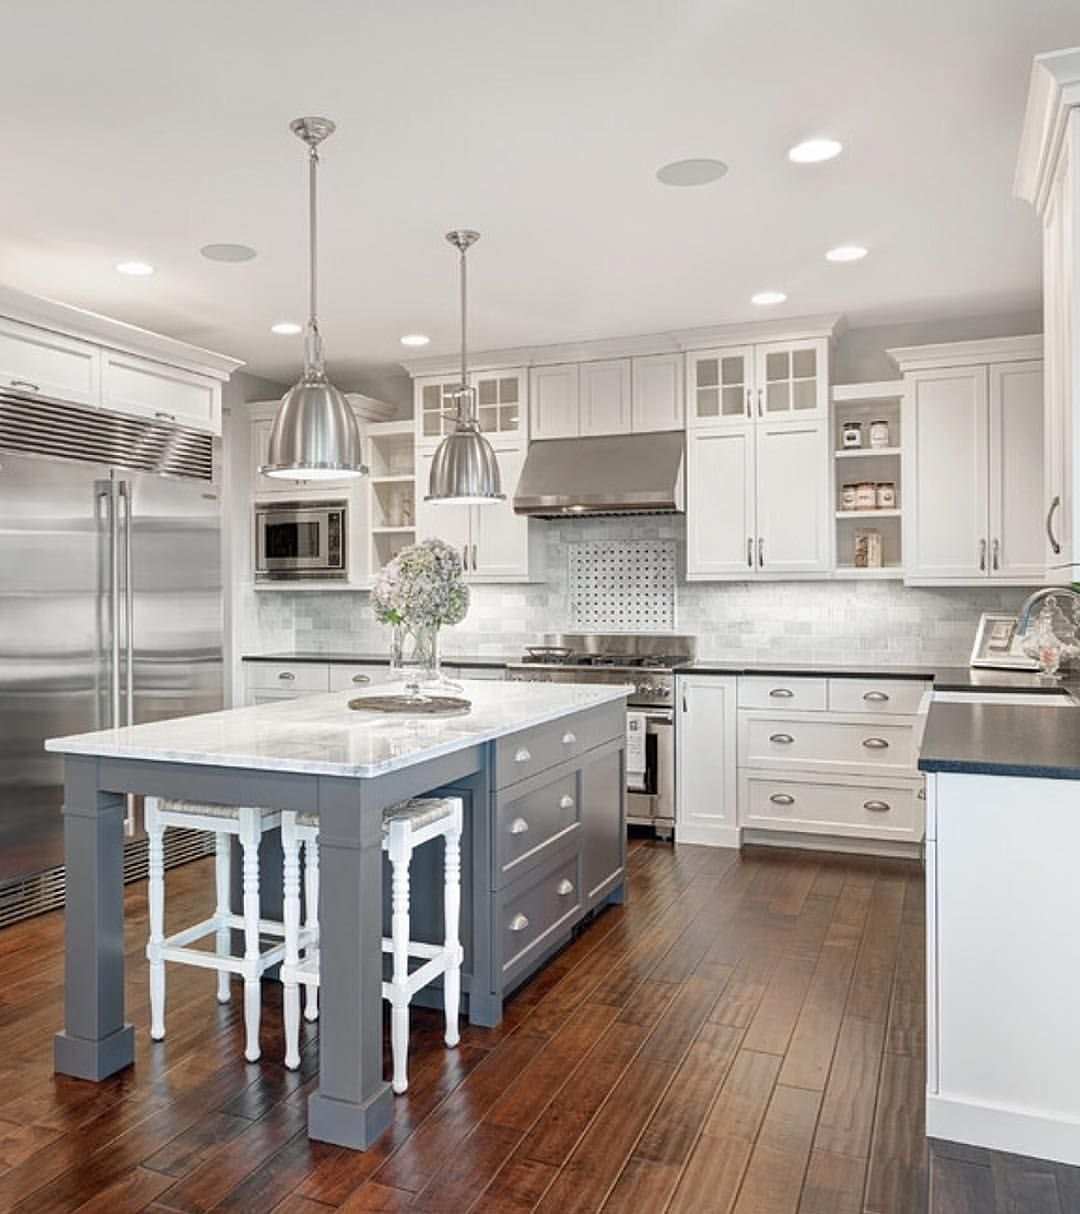 Small White Kitchen Island: White & Marble Kitchen With Grey Island